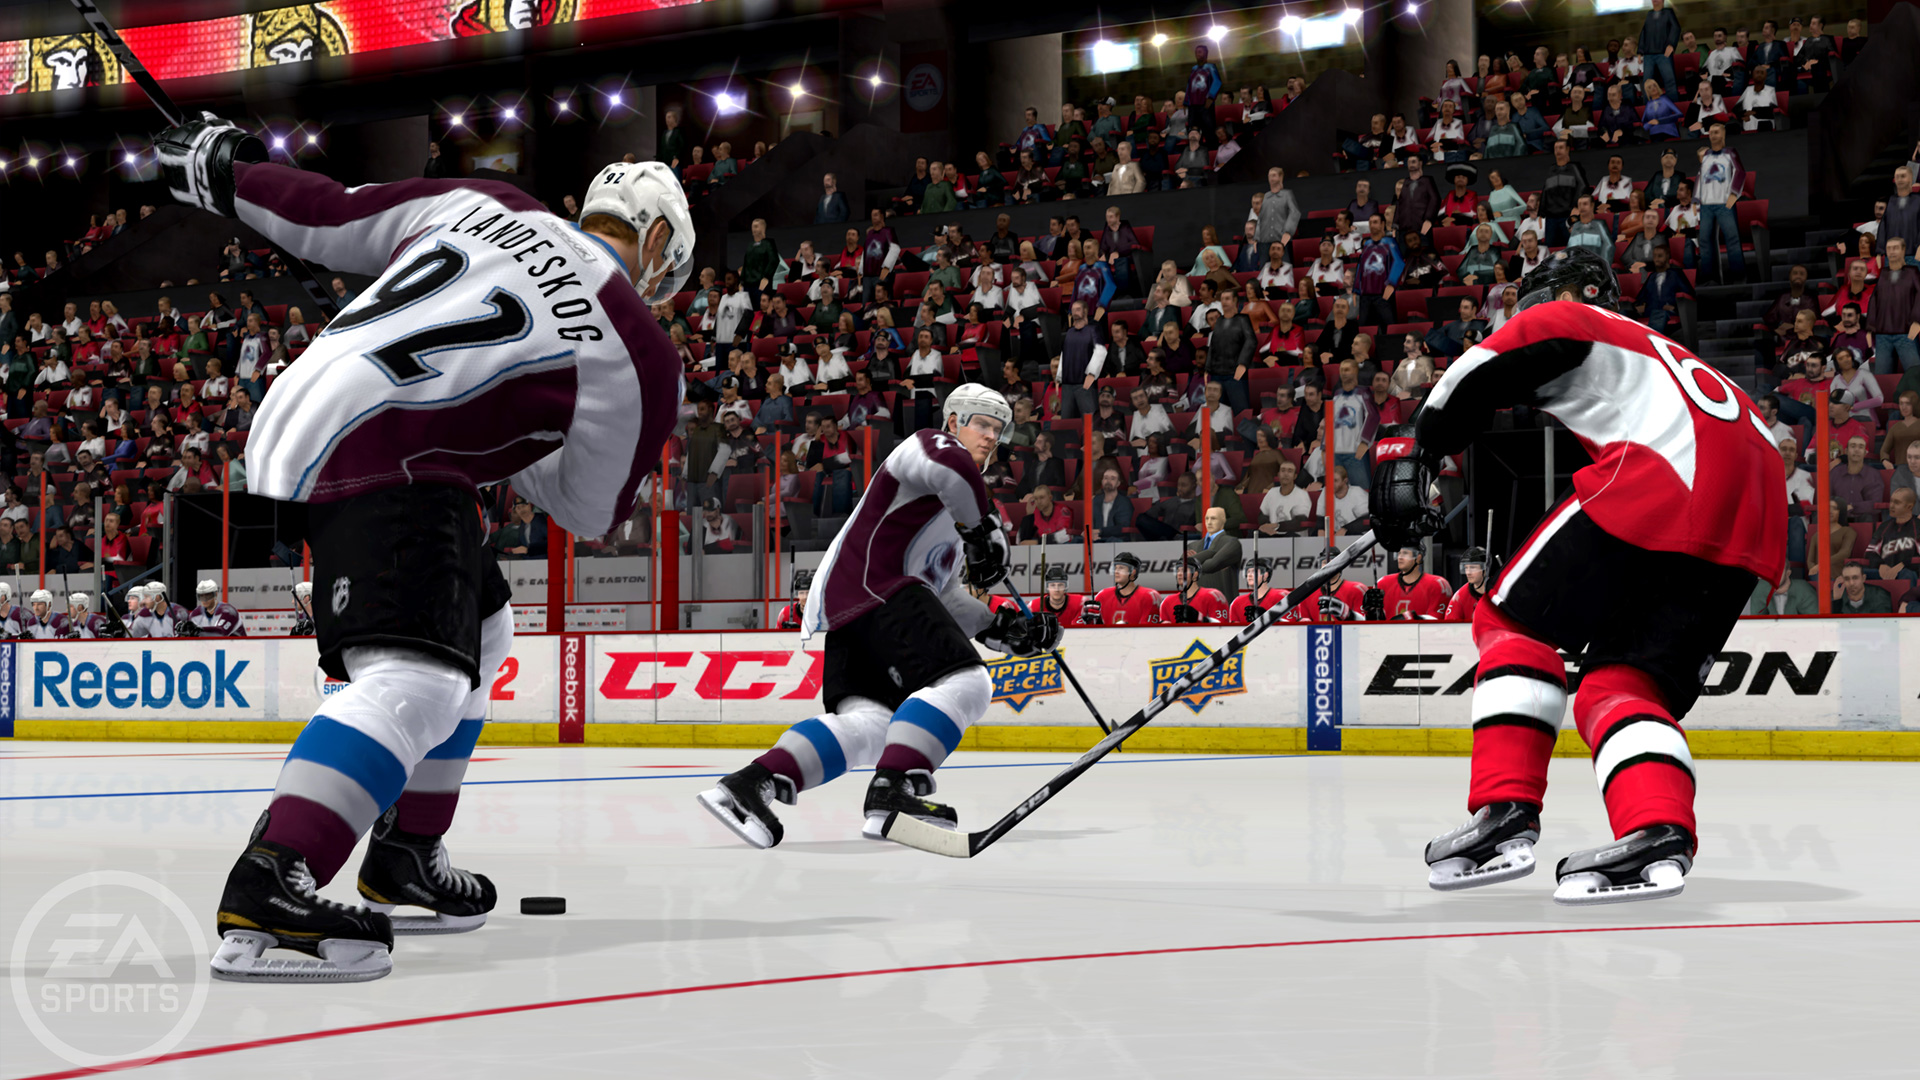 NHL 12 Wallpaper in 1920x1080